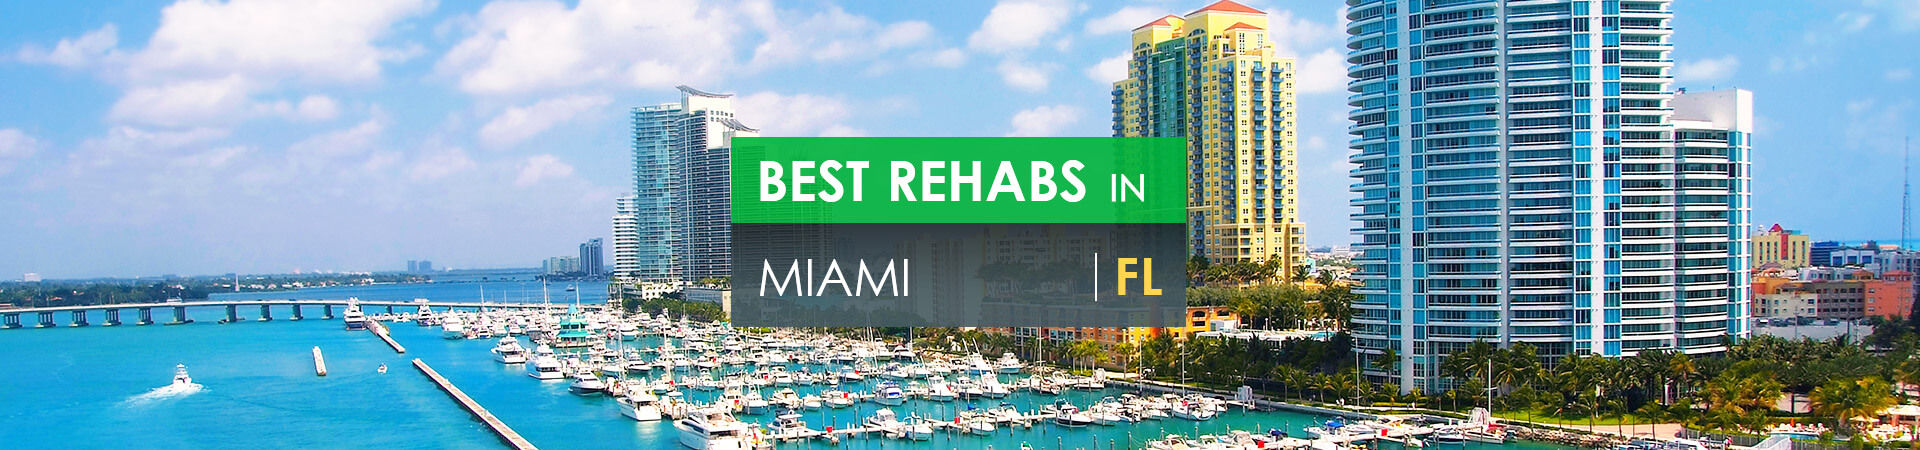 Best rehabs in Miami, FL